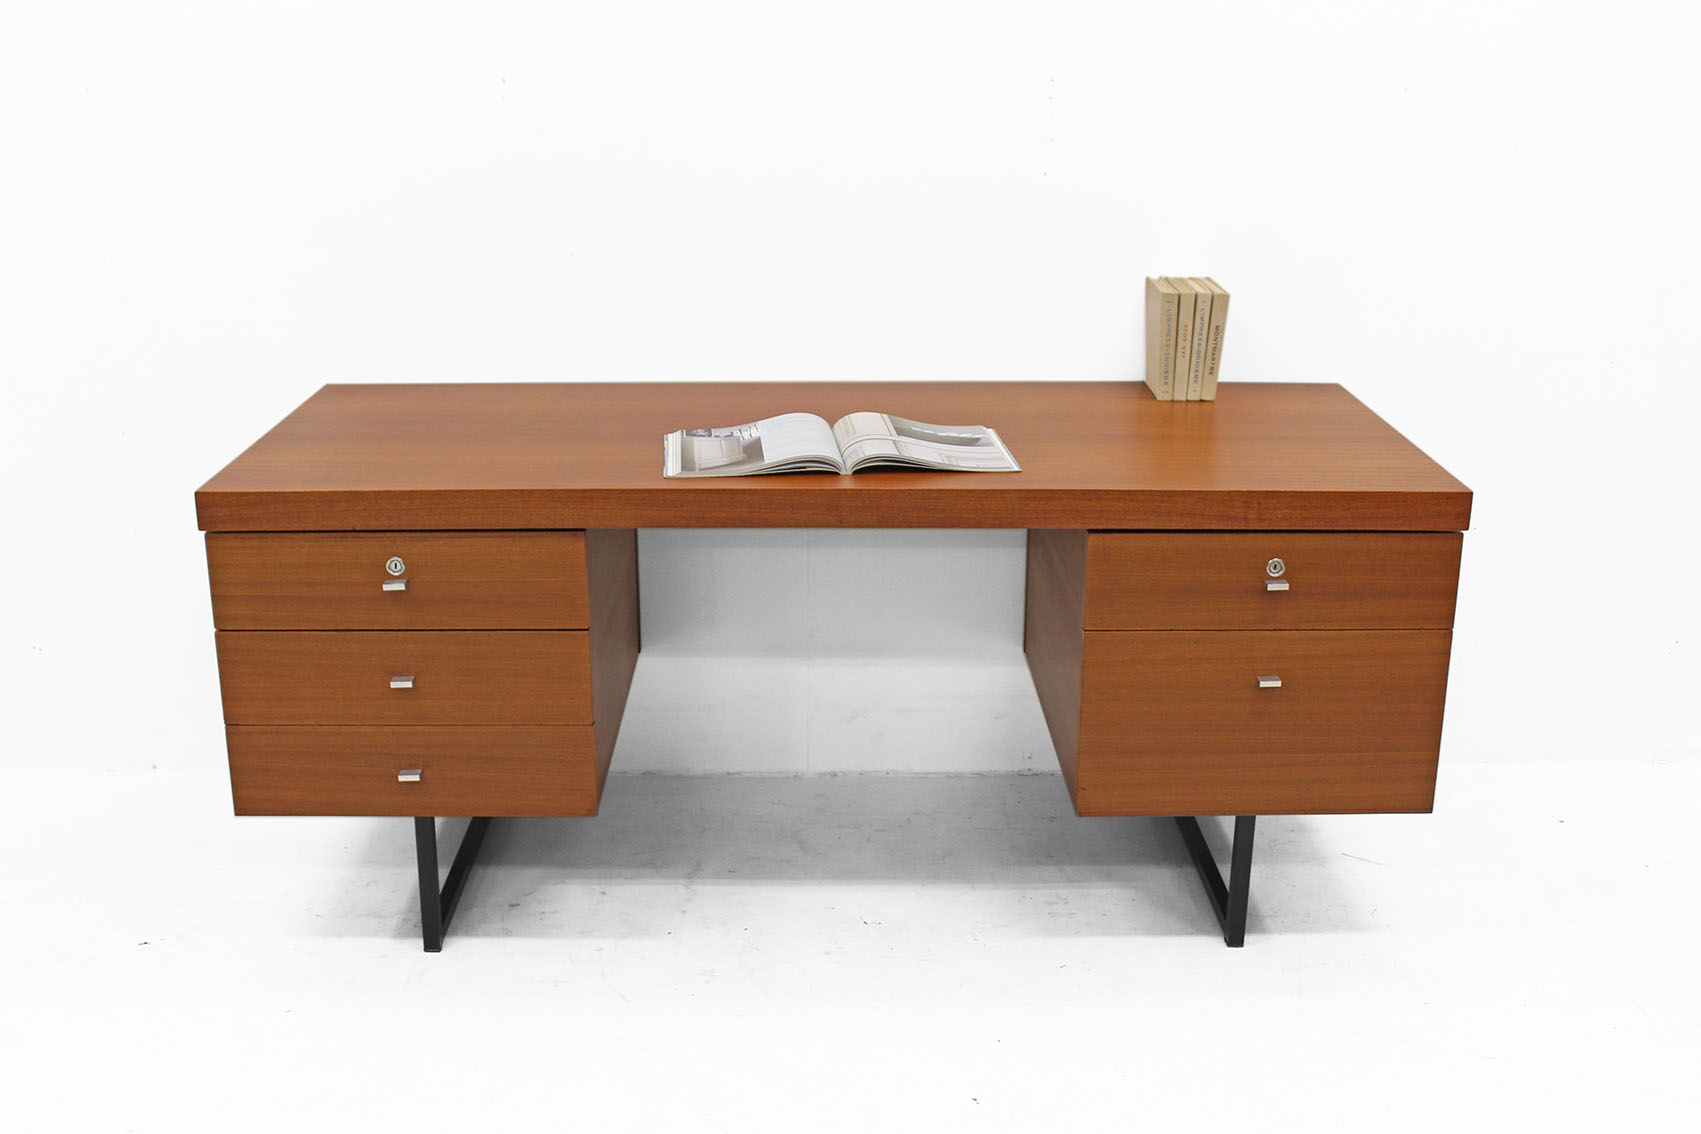 Meurop desk in teak